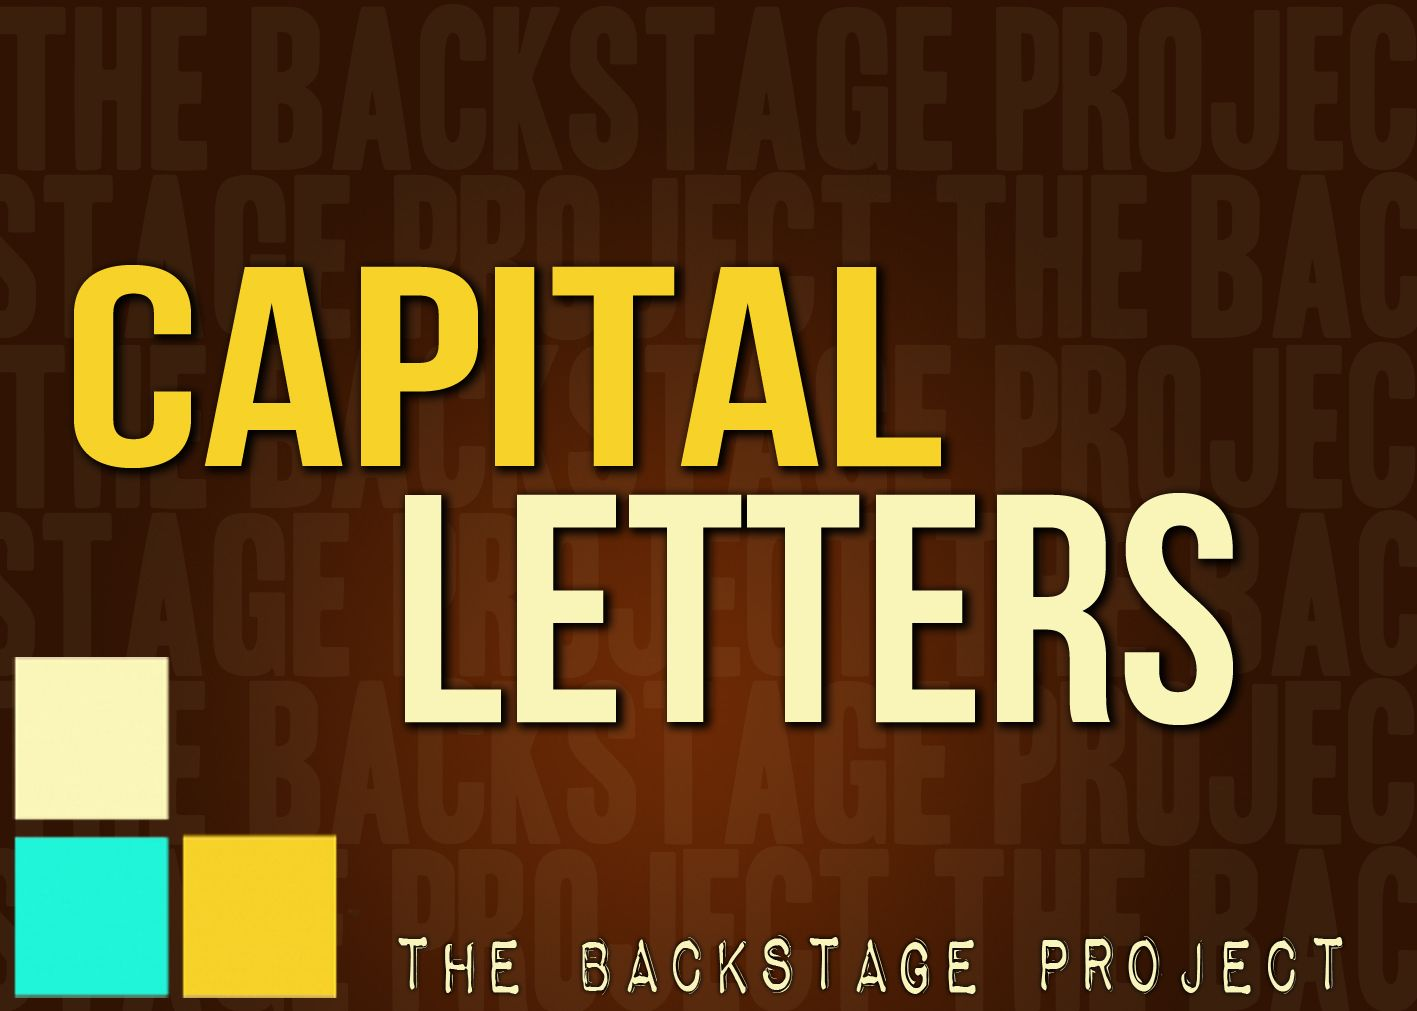 CAPITAL LETTERS Newsletter layout, Lettering, Layout design